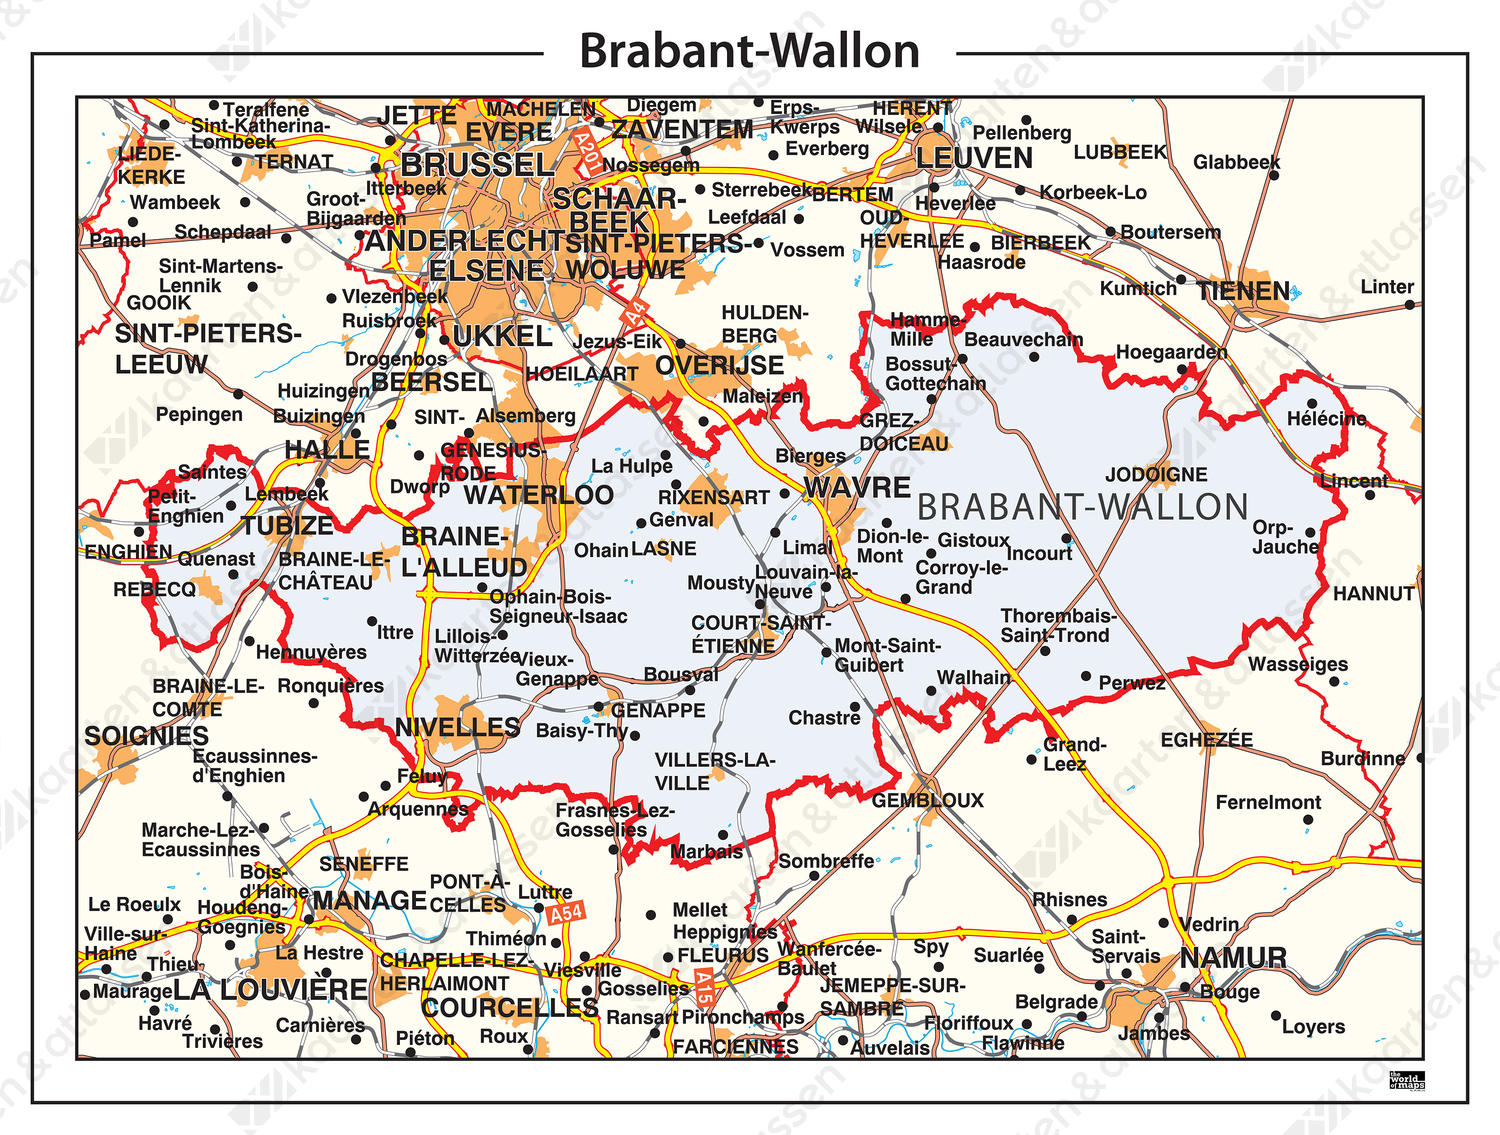 Provinciekaart Barbant-Wallon